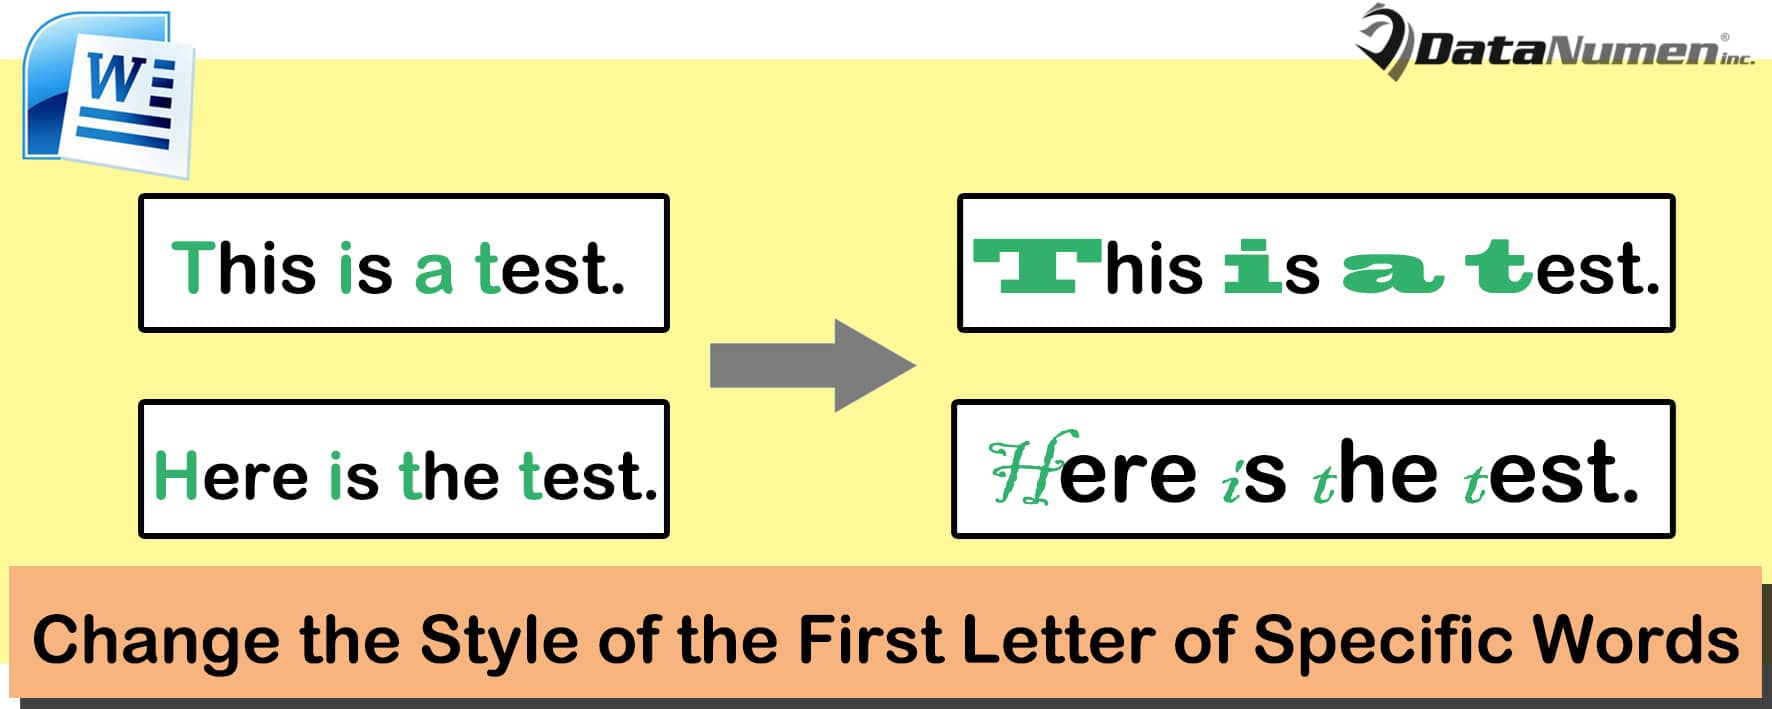 Change the Style of the First Letter of Specific Words in Your Word Document